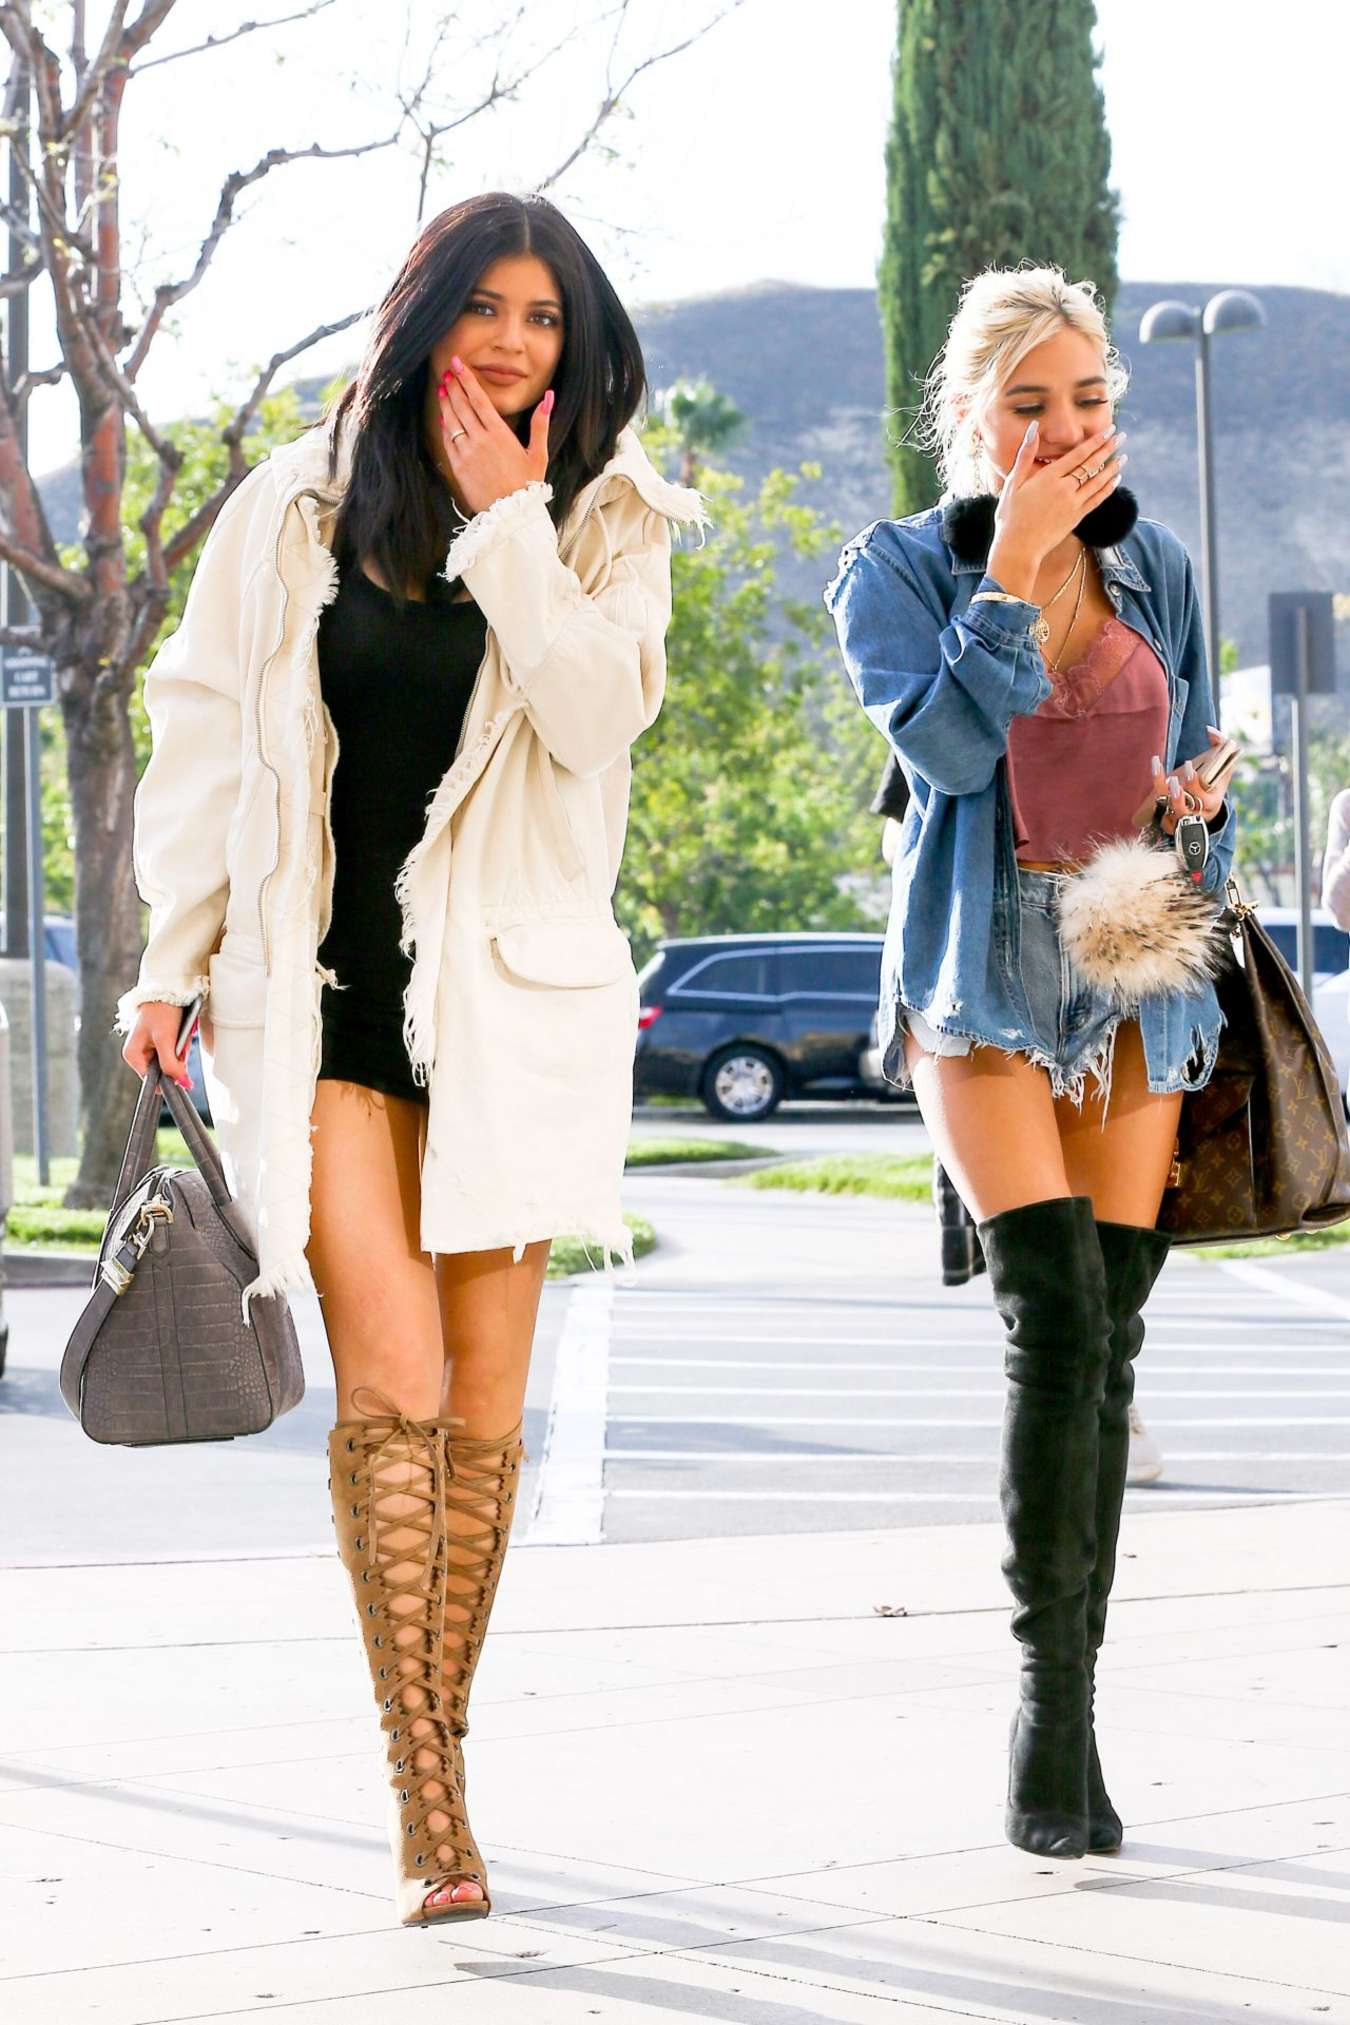 Kylie Jenner & Pia Mia Perez - Out in Calabasas